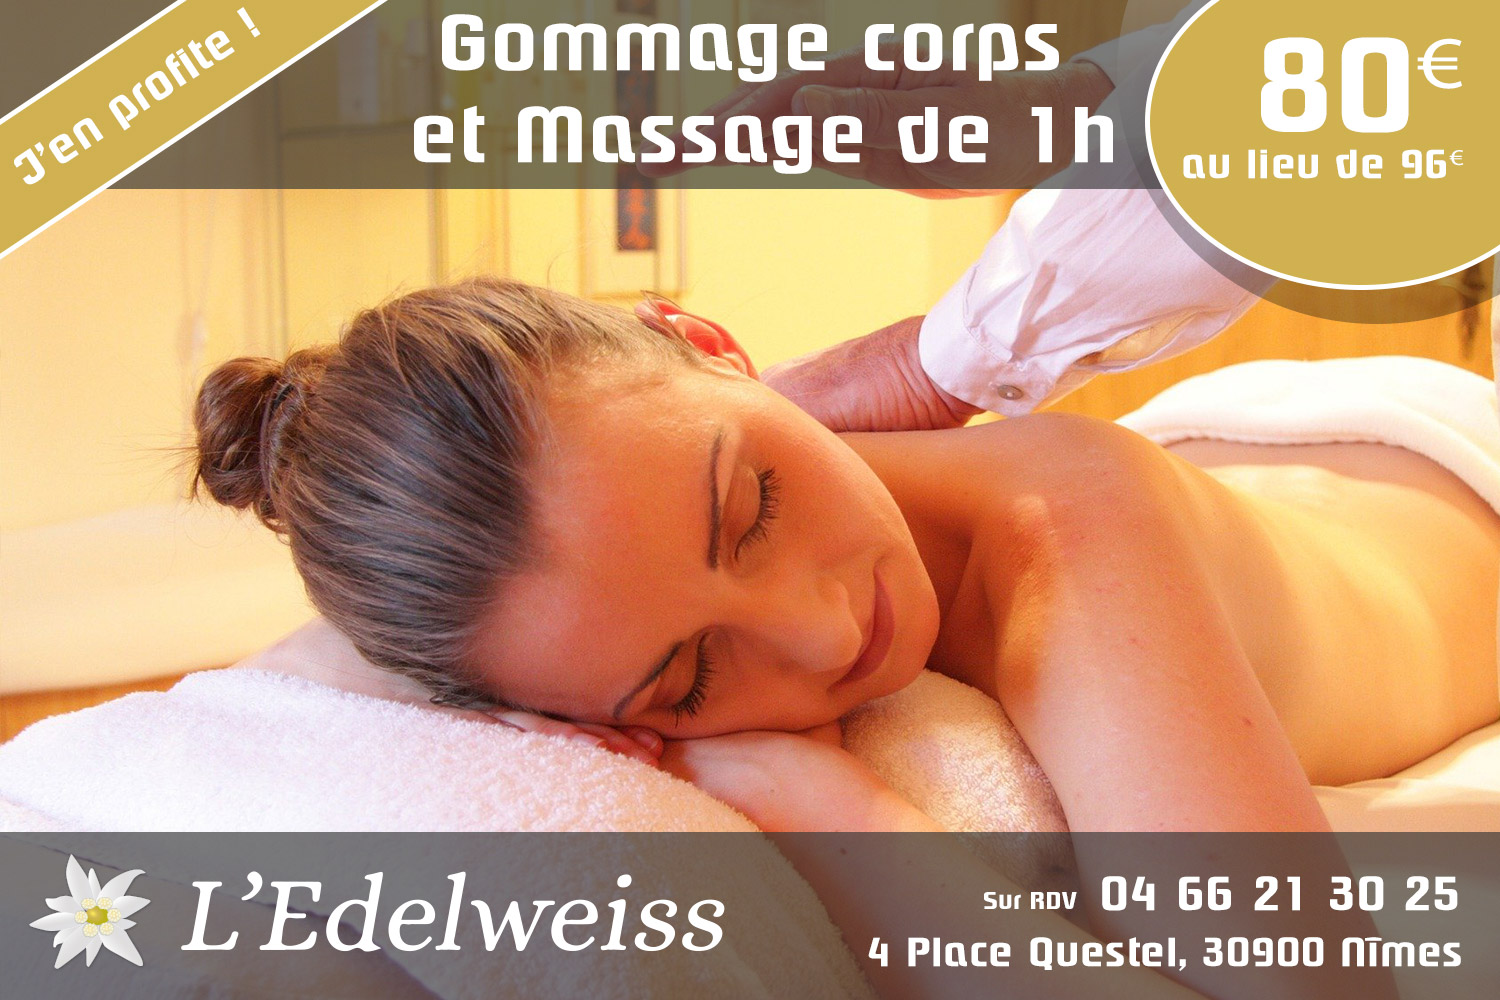 gommage-et-massage-edelweiss-promo